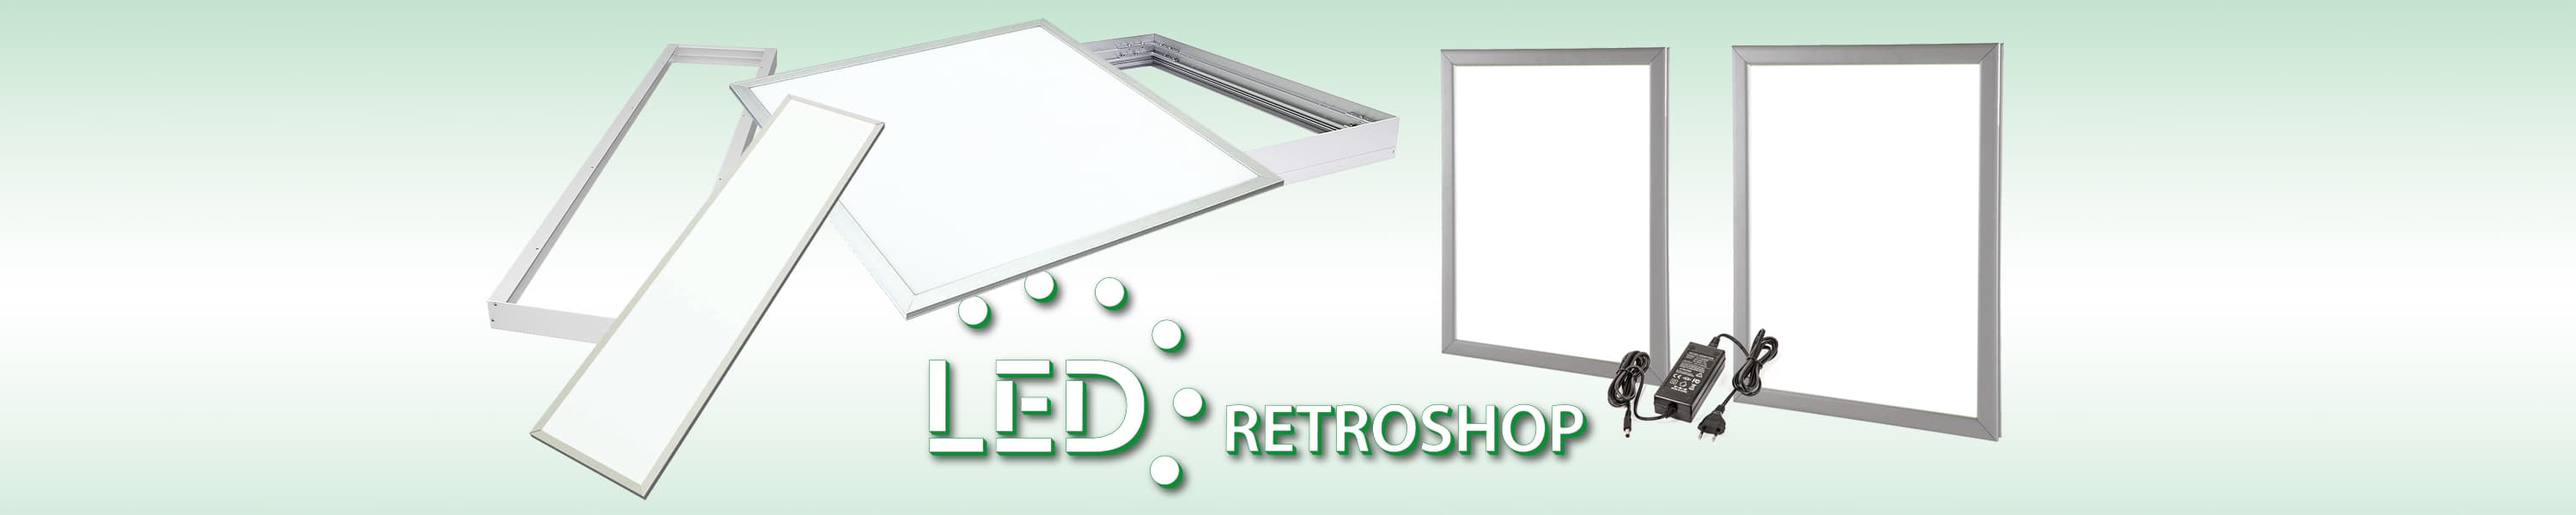 LED-Retroshop-Panels-LED-Tahmen-Slider